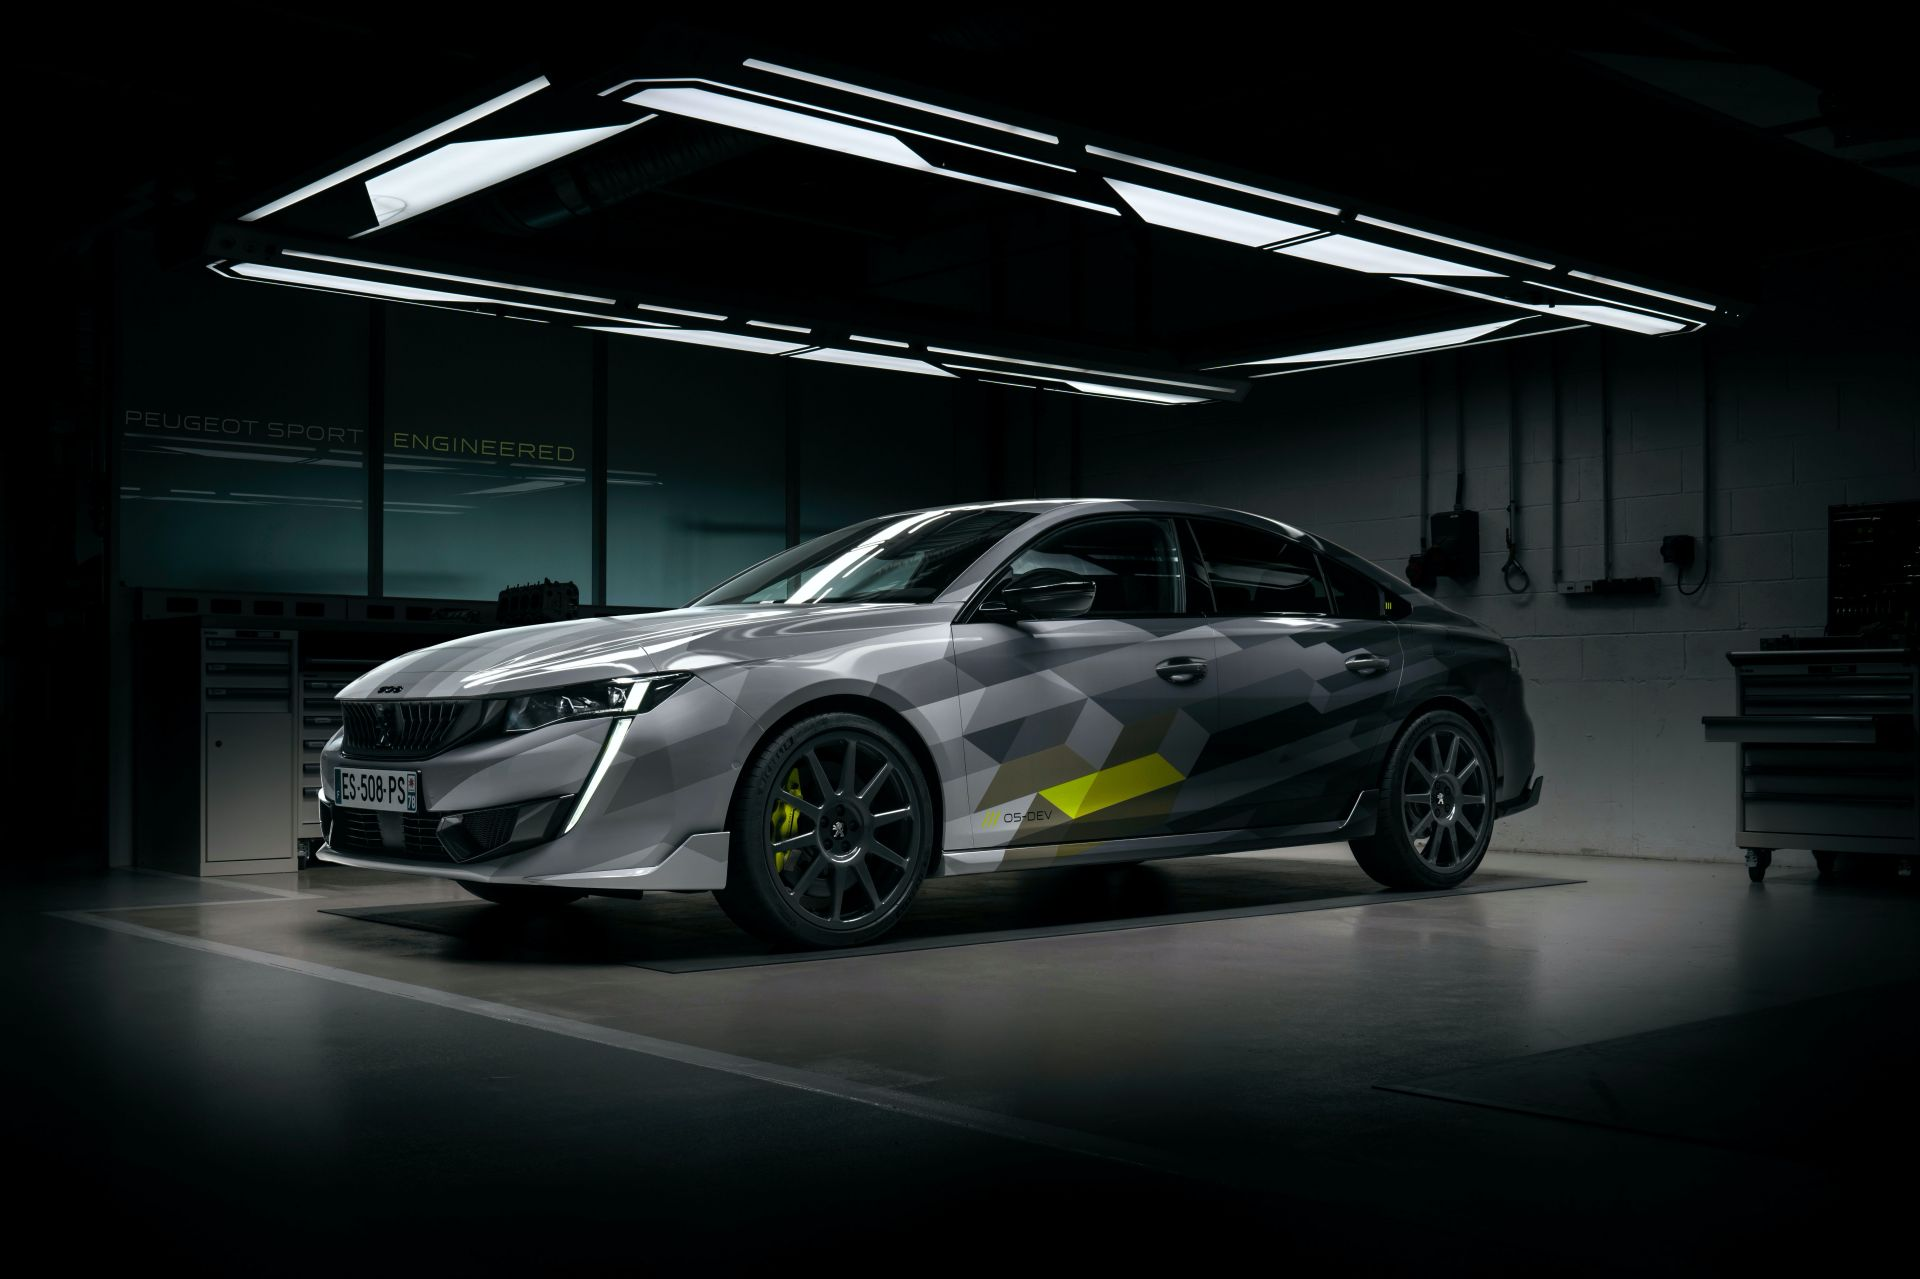 Peugeot-508-Sport-Engineered-production-spec-3